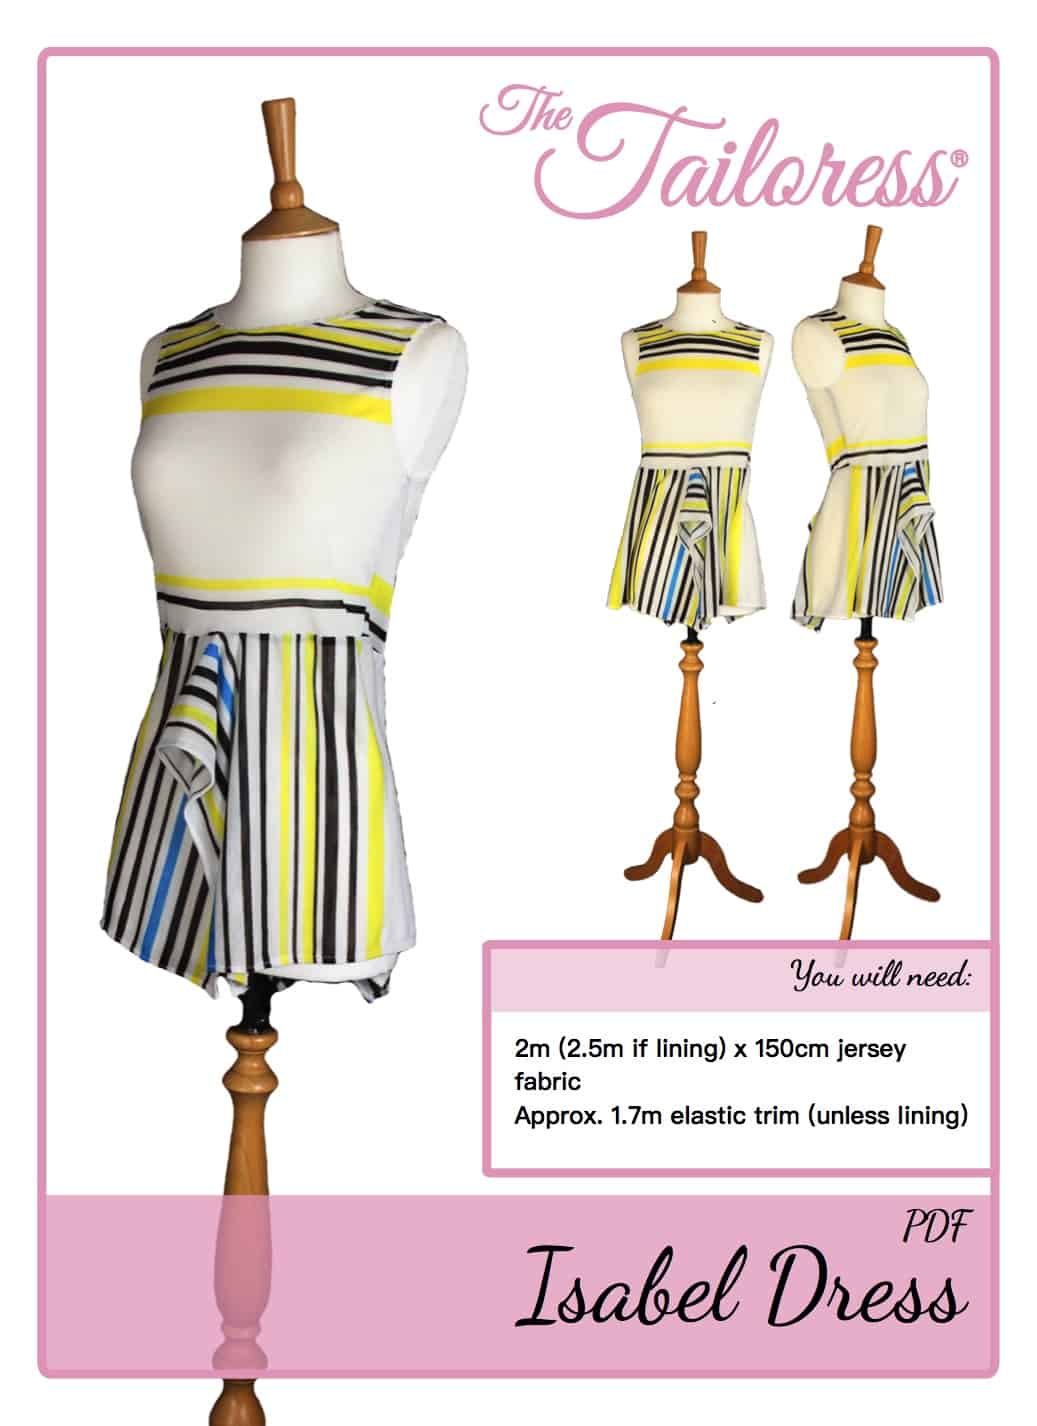 The Tailoress PDF Sewing Patterns - Isabel Dress (Adult size) Tutorial